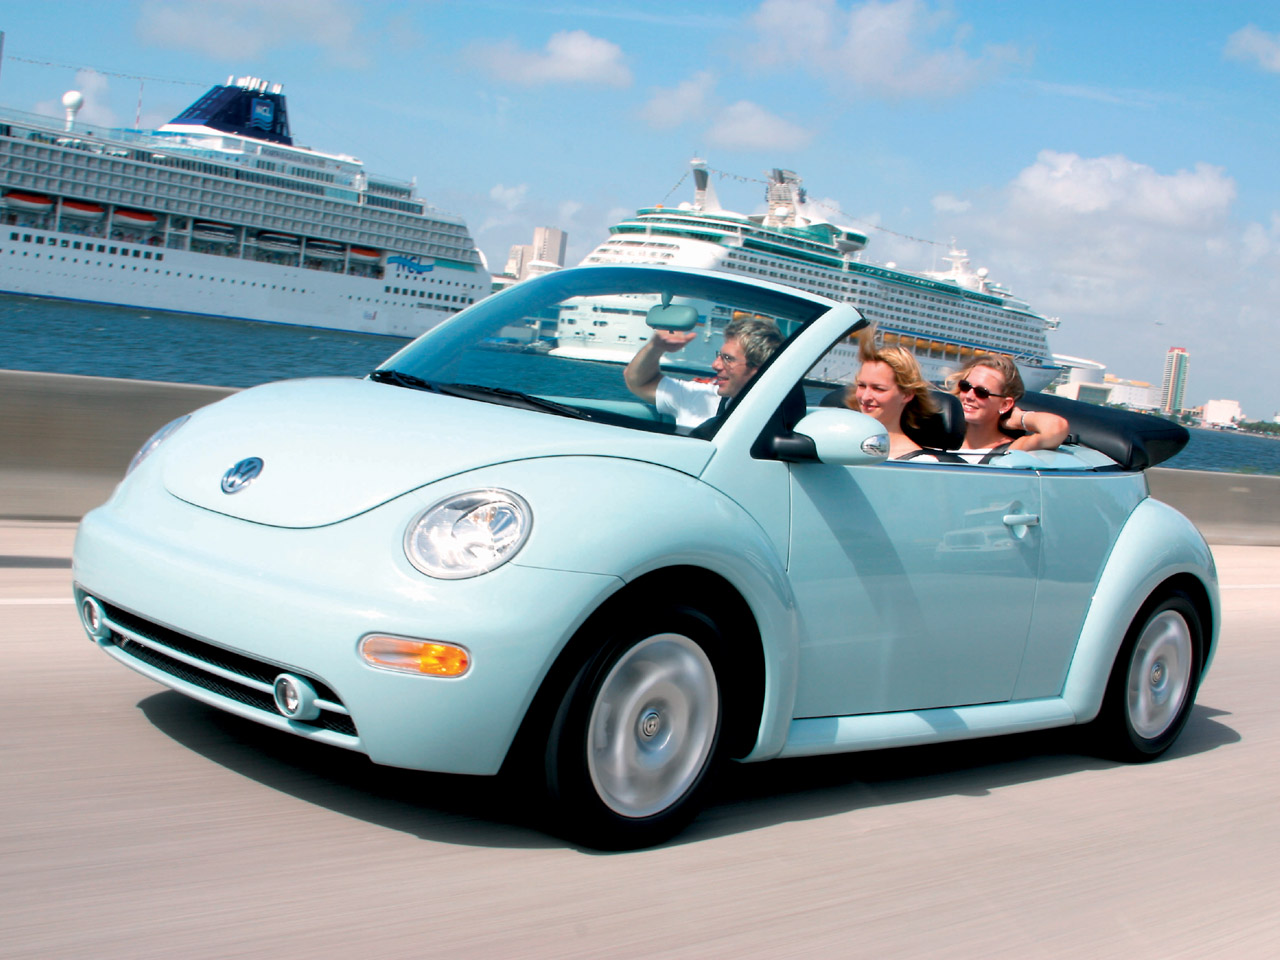 fortune reputation latest effort tag vw to salvage its volkswagen u recall in stall s will the